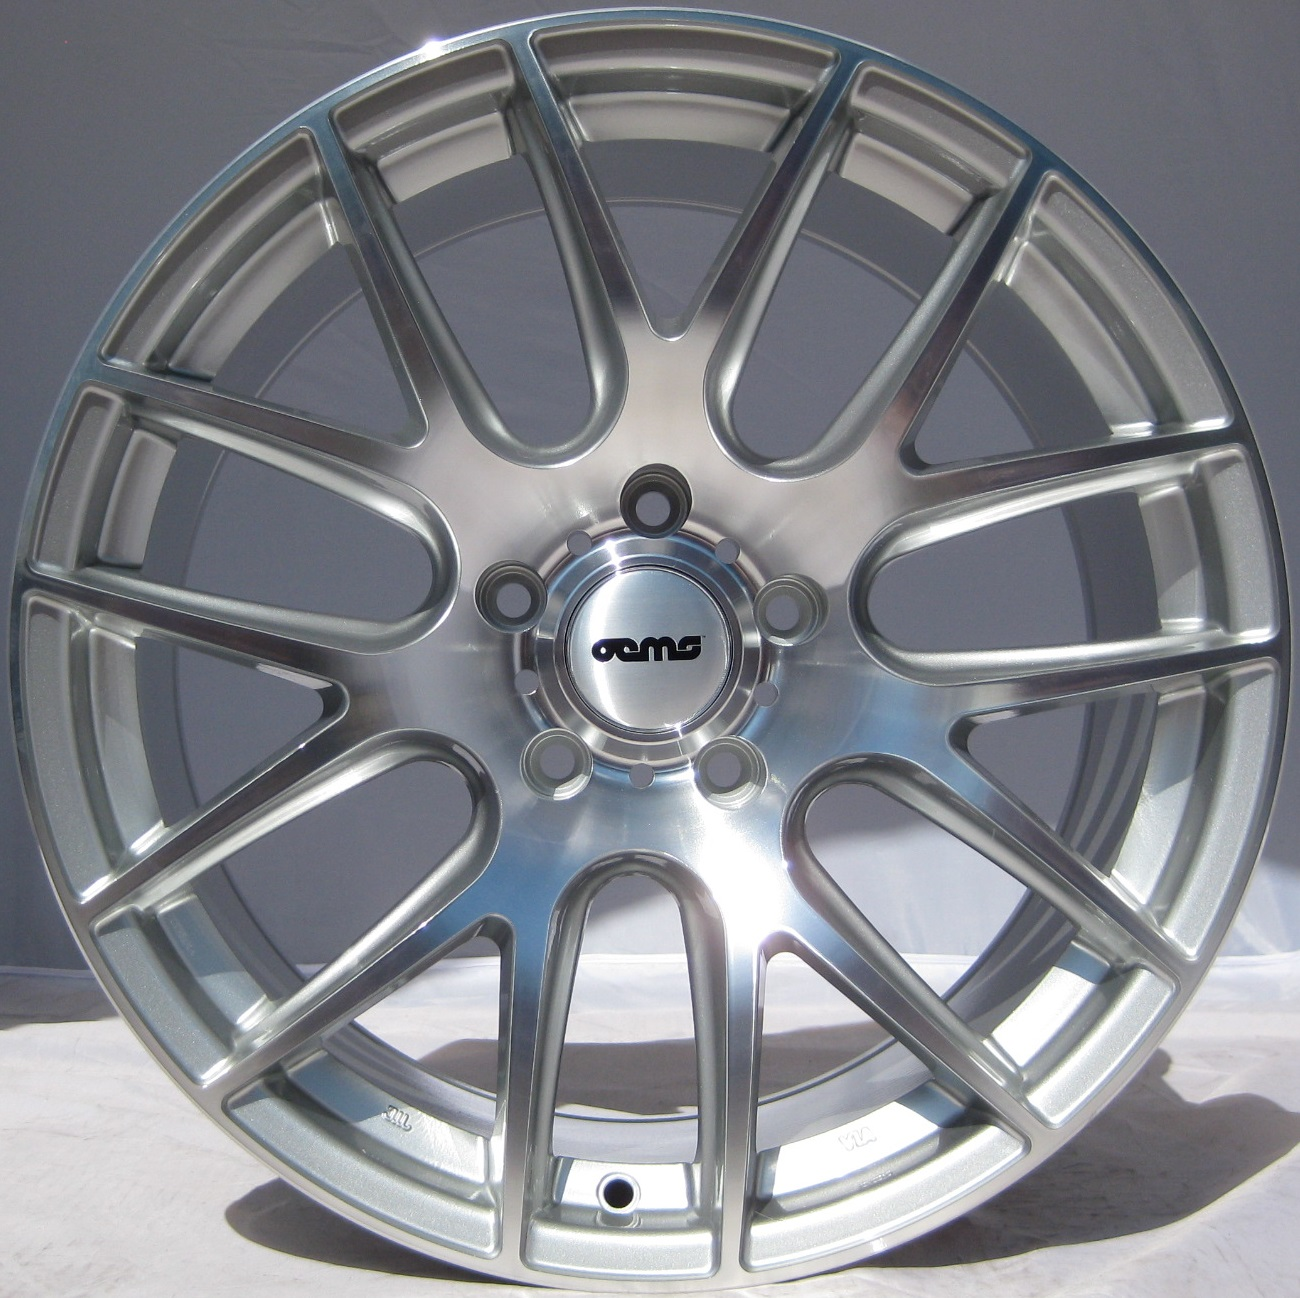 "NEW 18"" OEMS 111 ALLOY WHEELS IN SILVER/POL WITH DEEPER CONCAVE REARS ET35/35"